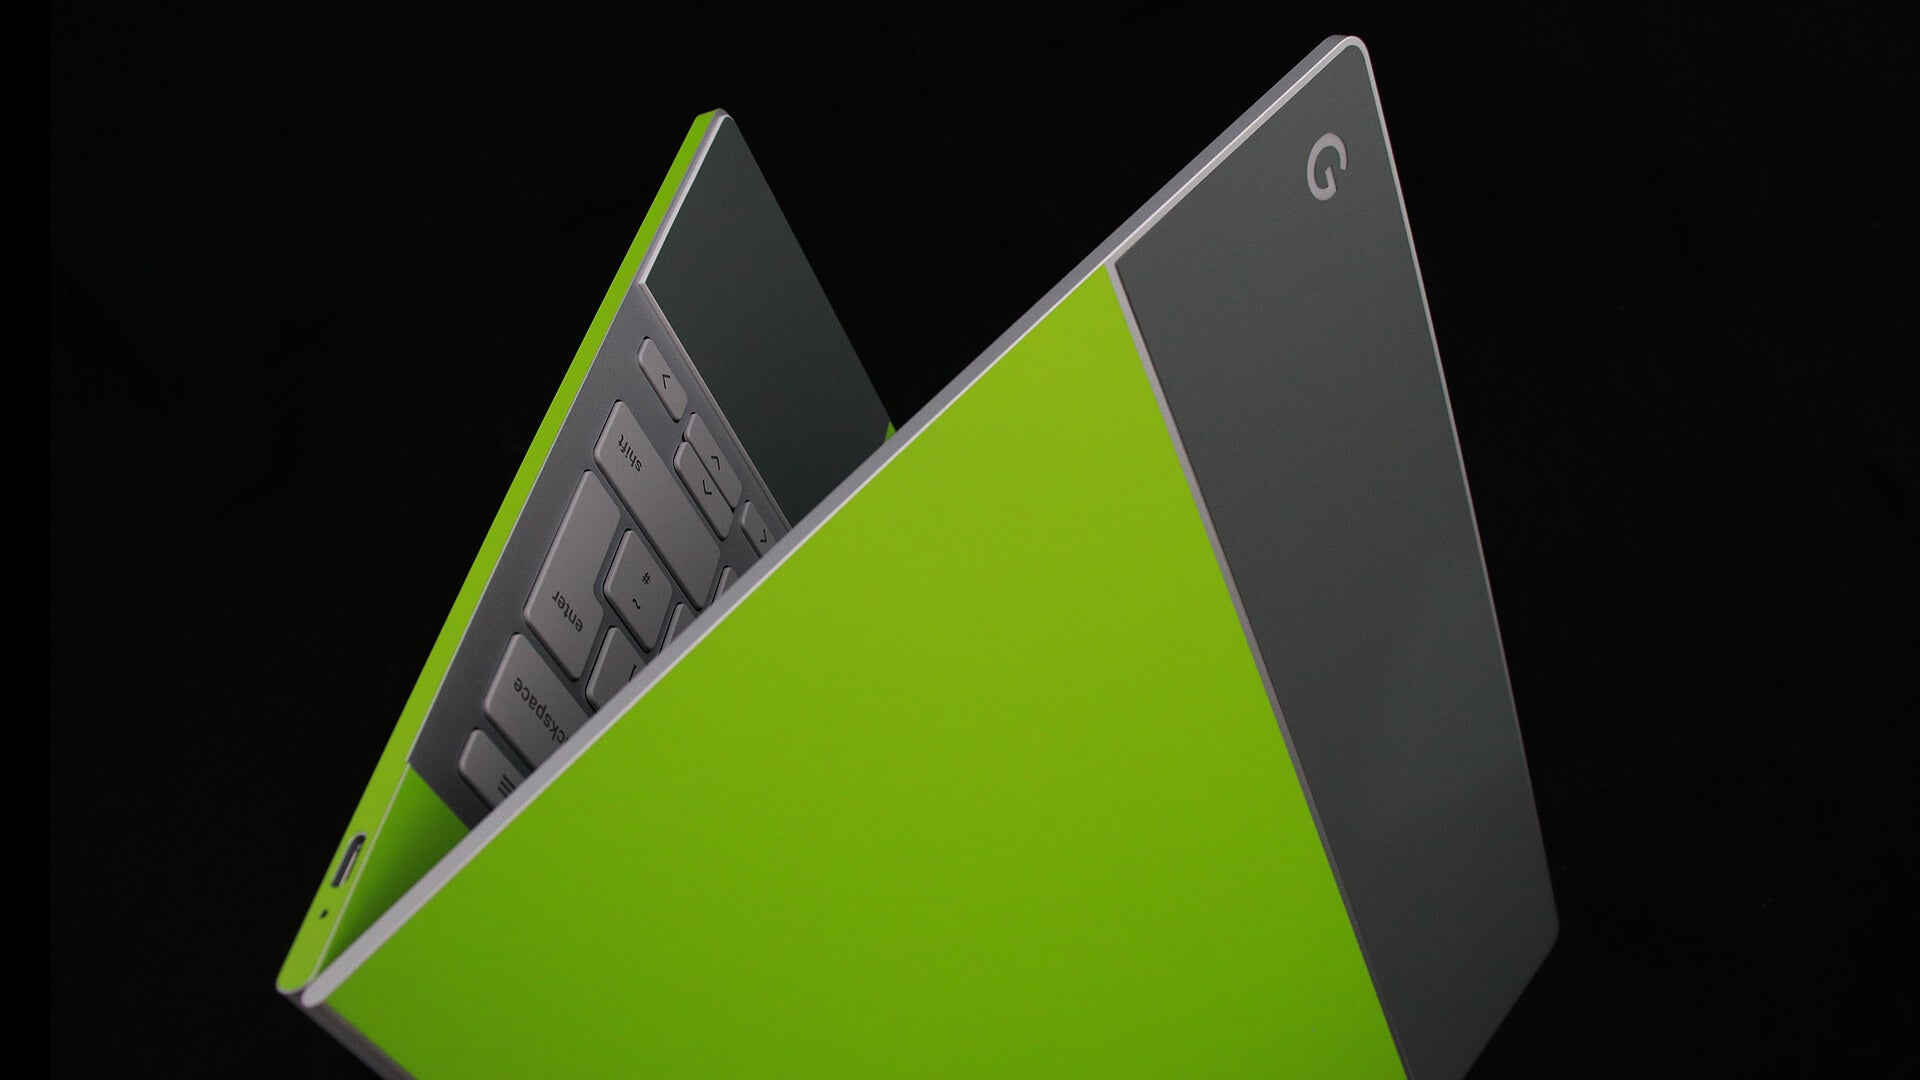 Google Pixelbook Matt Green and Matt Grey Skins